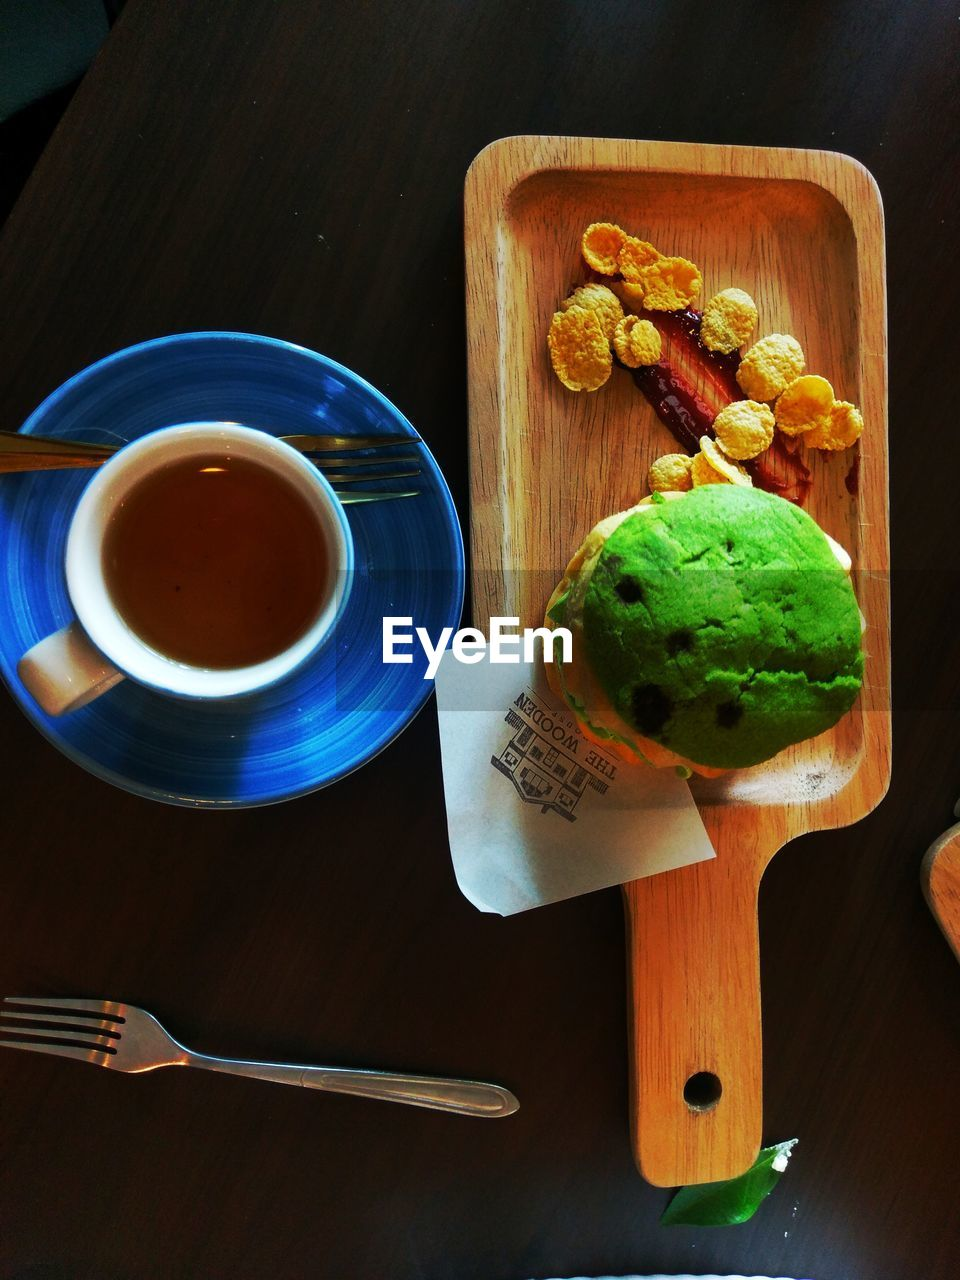 HIGH ANGLE VIEW OF BREAKFAST AND COFFEE ON TABLE